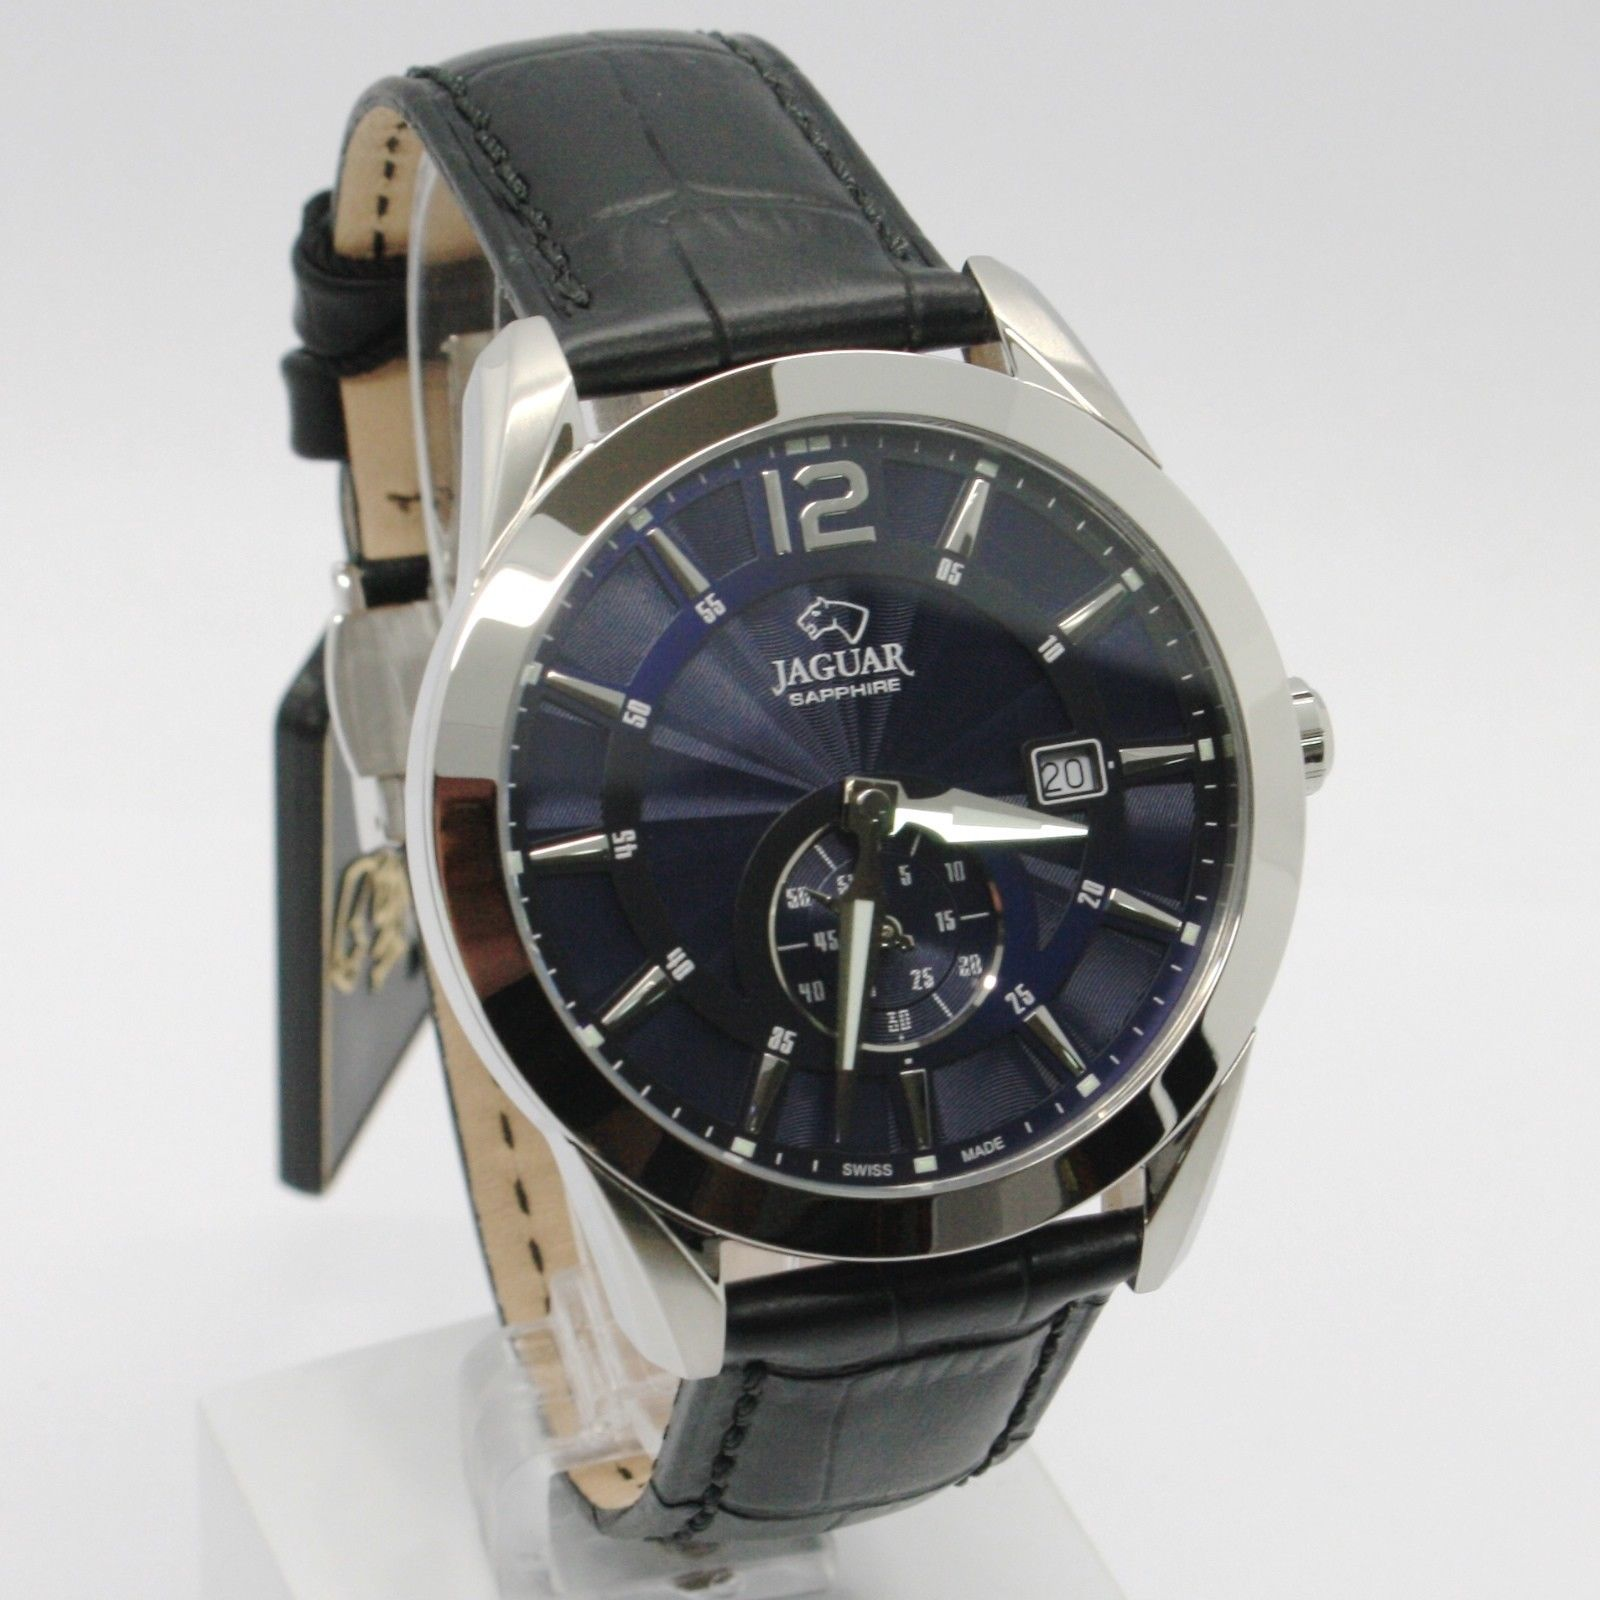 JAGUAR WATCH, SWISS MADE, SAPPHIRE CRYSTAL, BLUE, 43 MM CASE BLACK LEATHER BAND